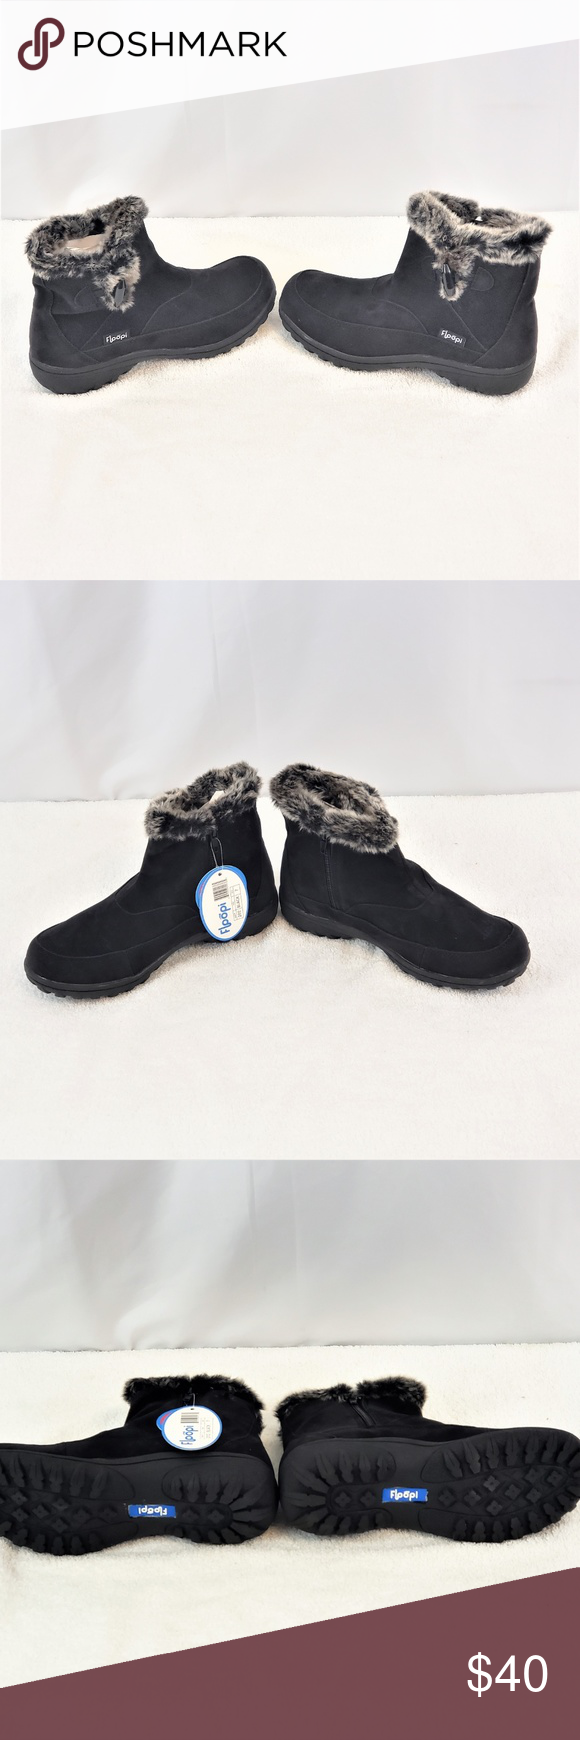 Fur Lined Zipper Ankle Boots